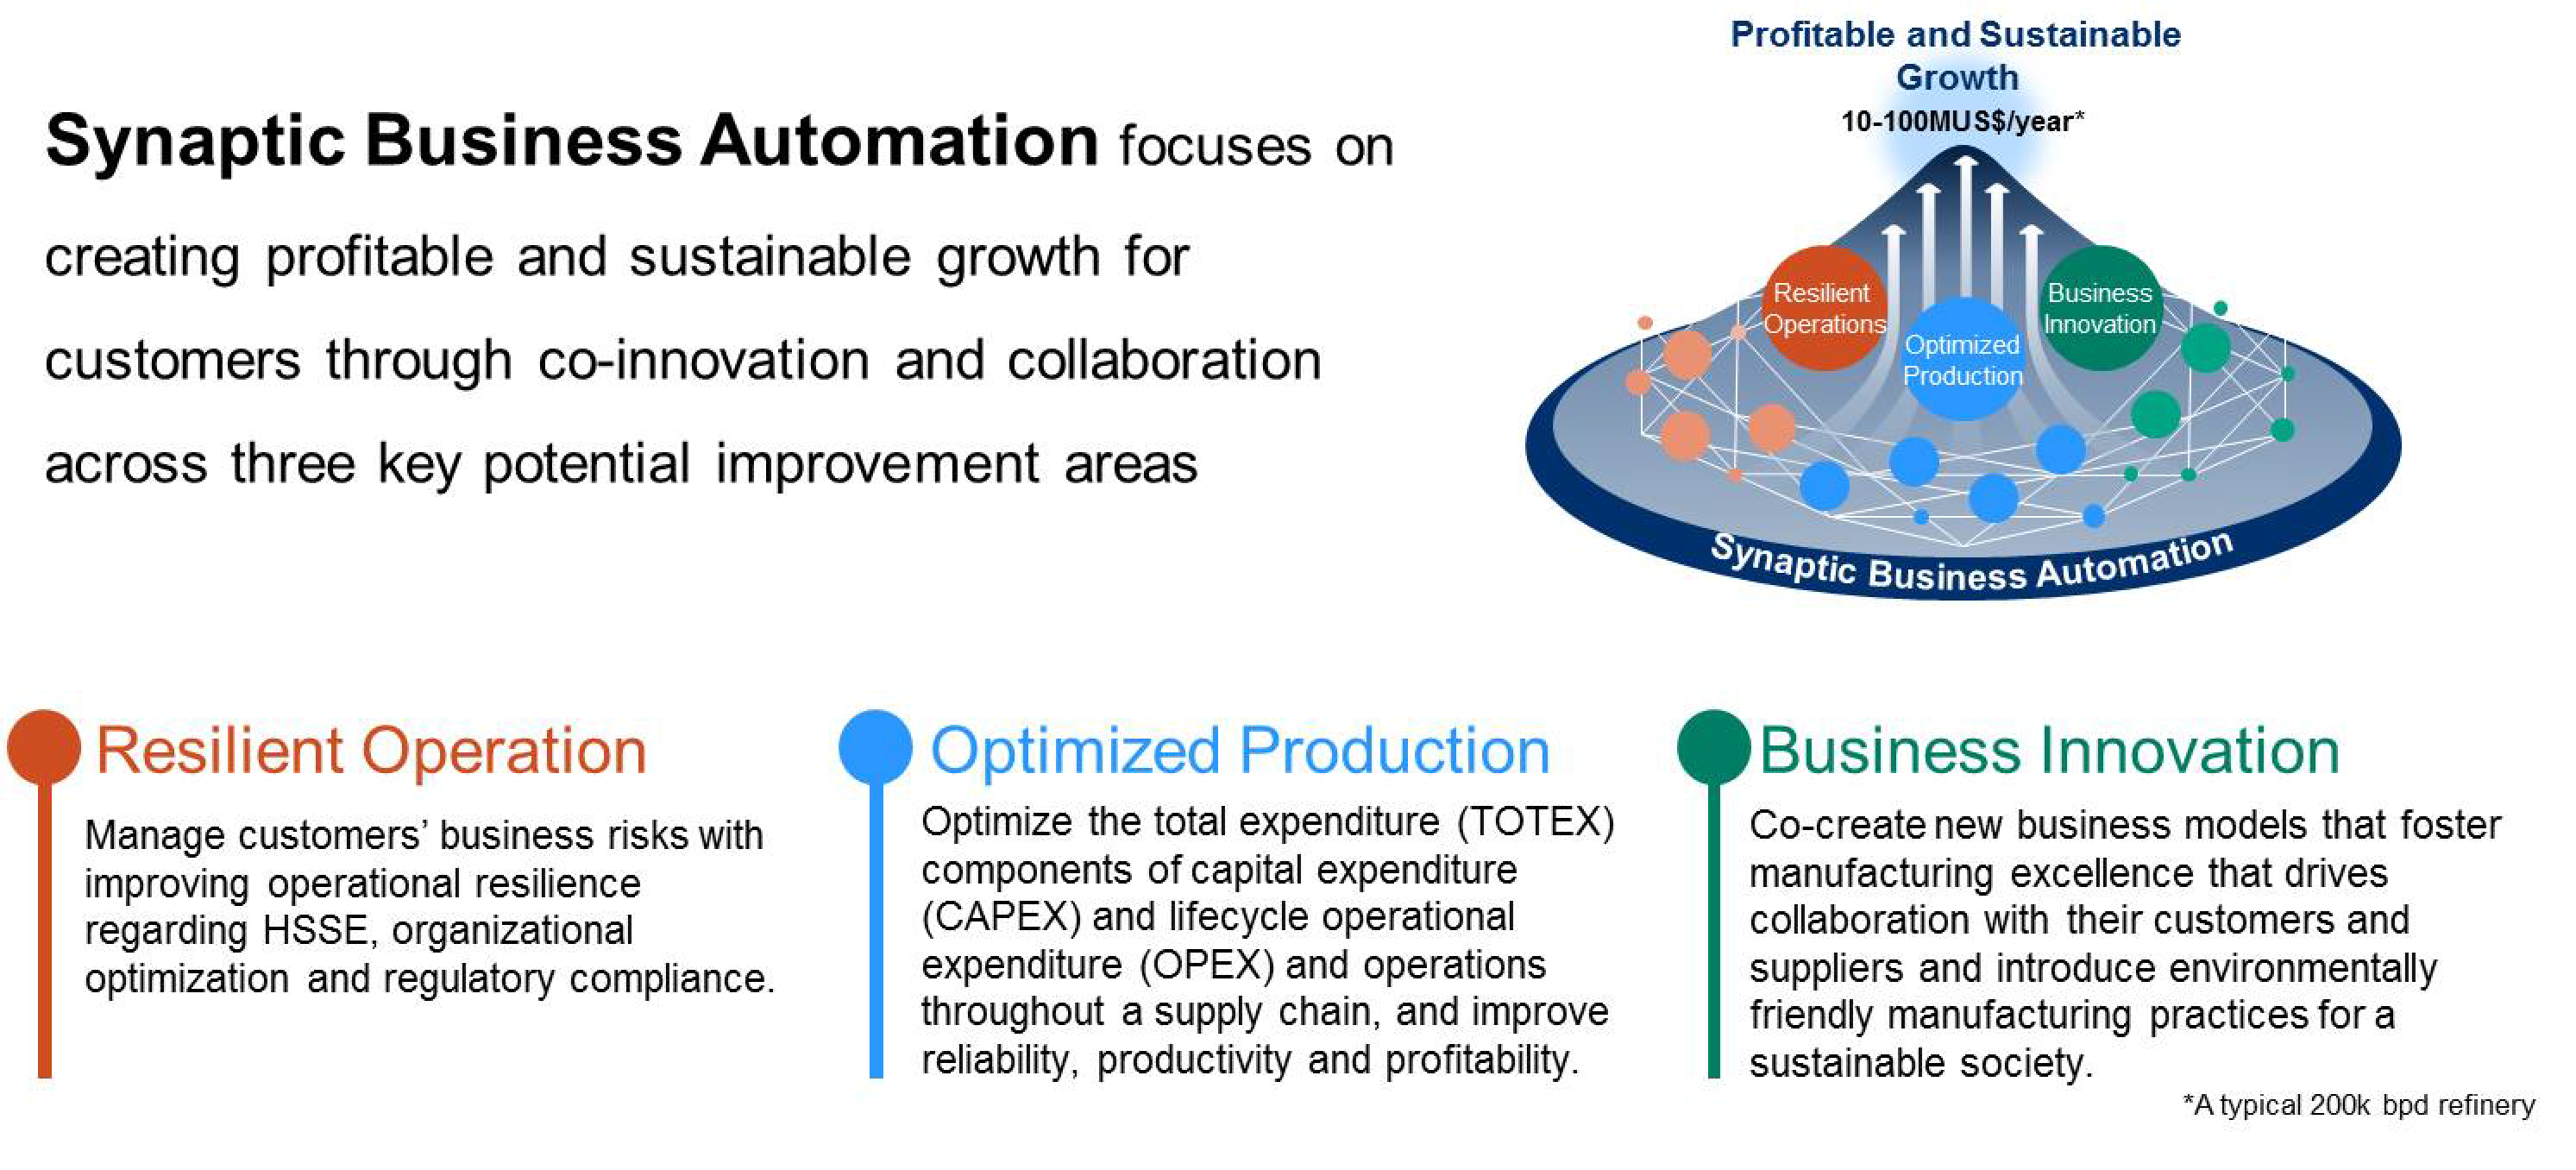 value proposition of Synaptic Business Automation